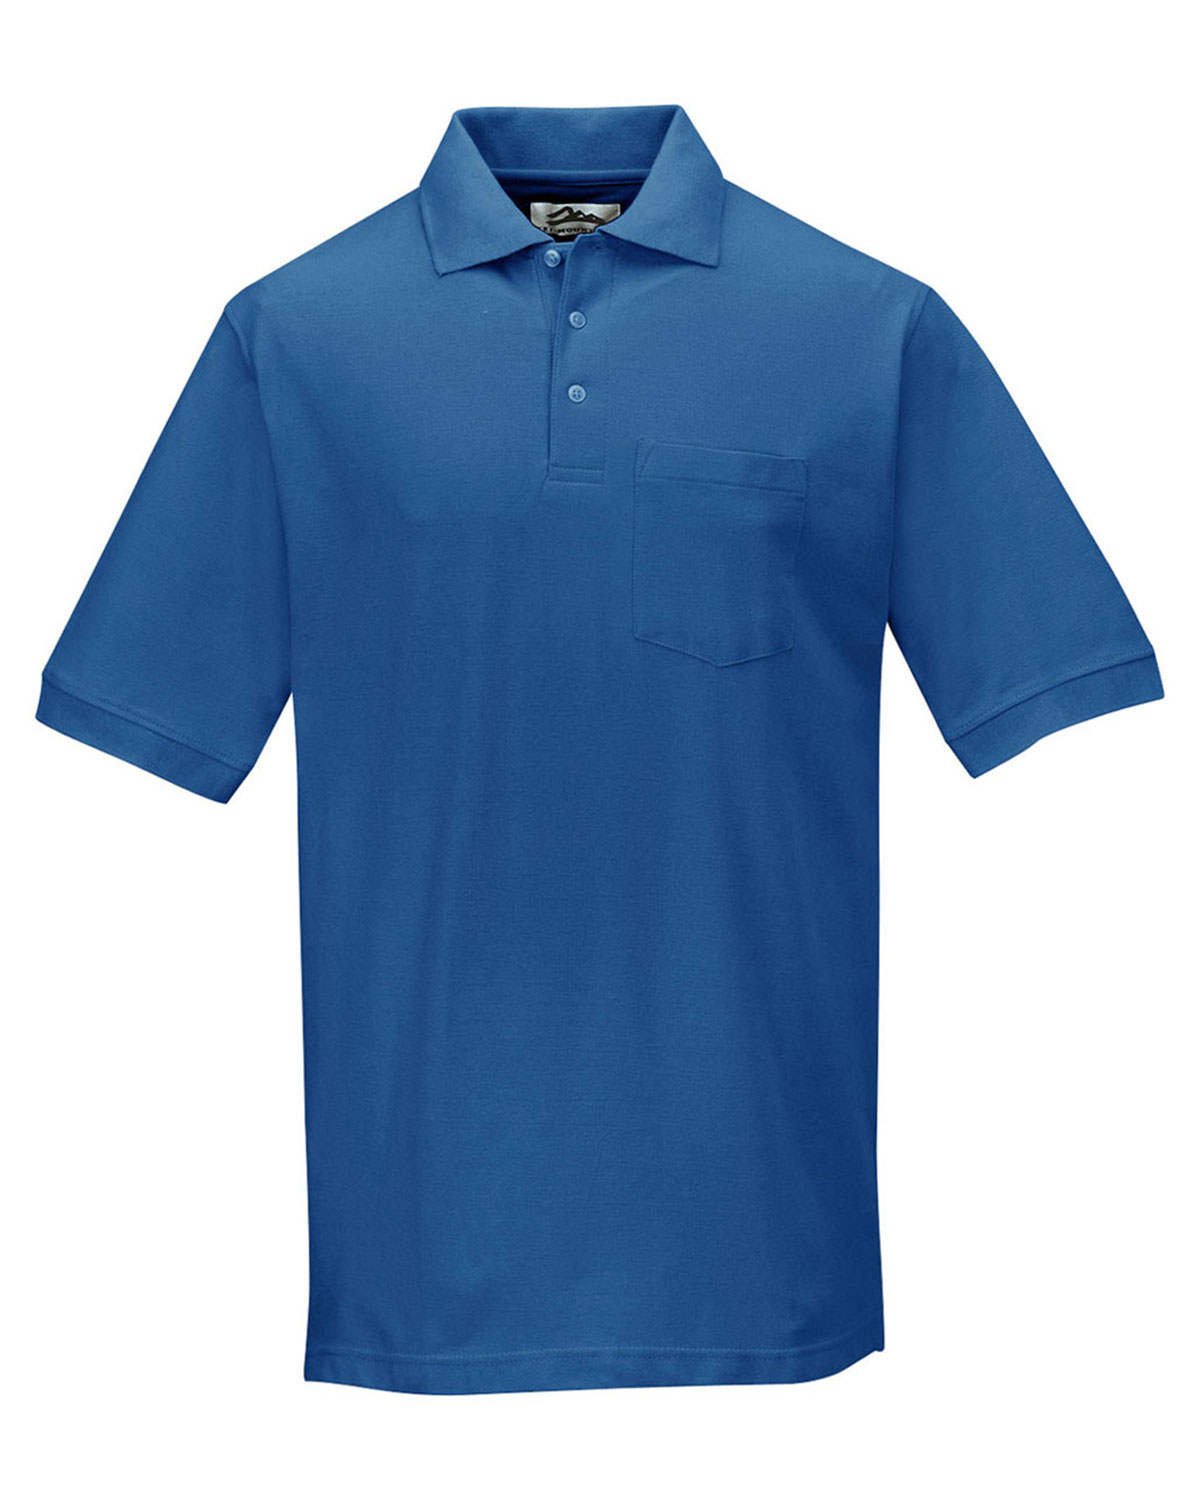 Tri Mountain Baby Pique Pocketed Polo Golf Shirt At Big